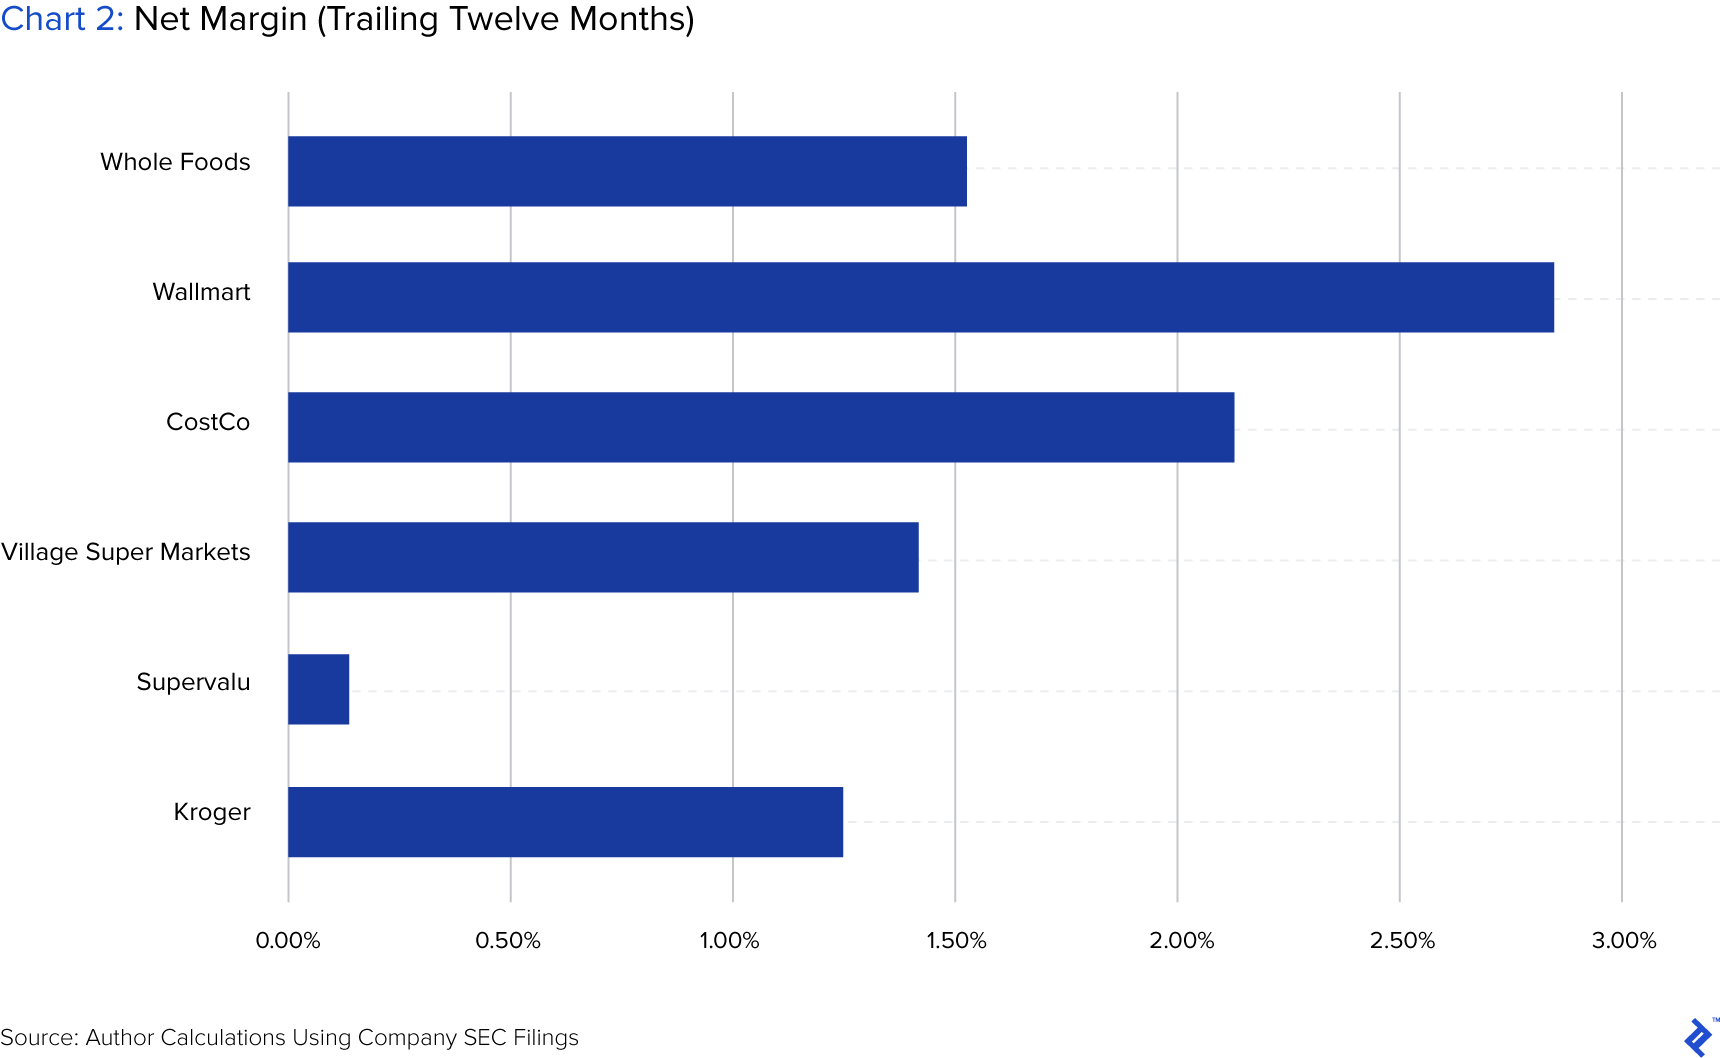 chart showing net margin trailing twelve months